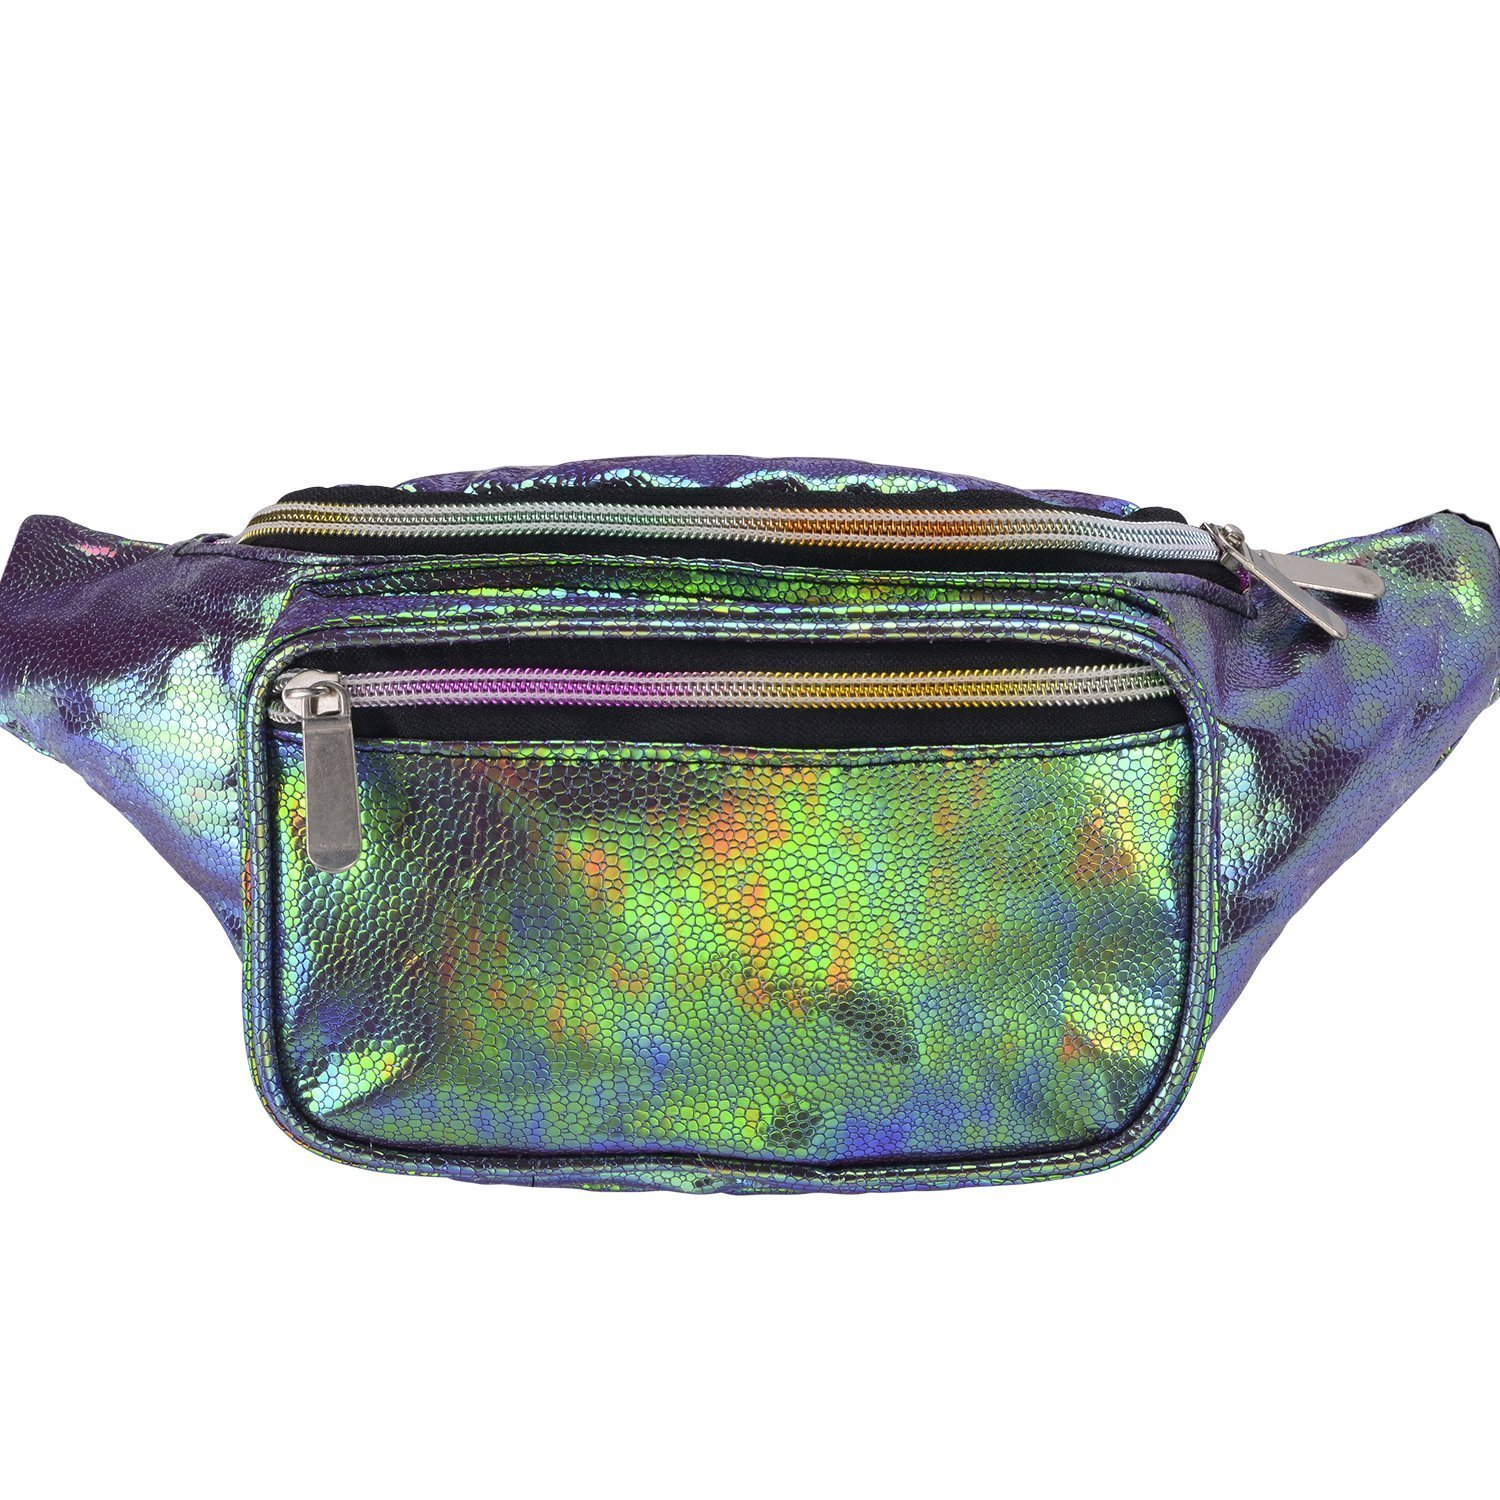 Miracu Holographic Neon Fanny Packs for Women, Fashion Cute Fanny Pack for Rave, Festival (Holographic Green)